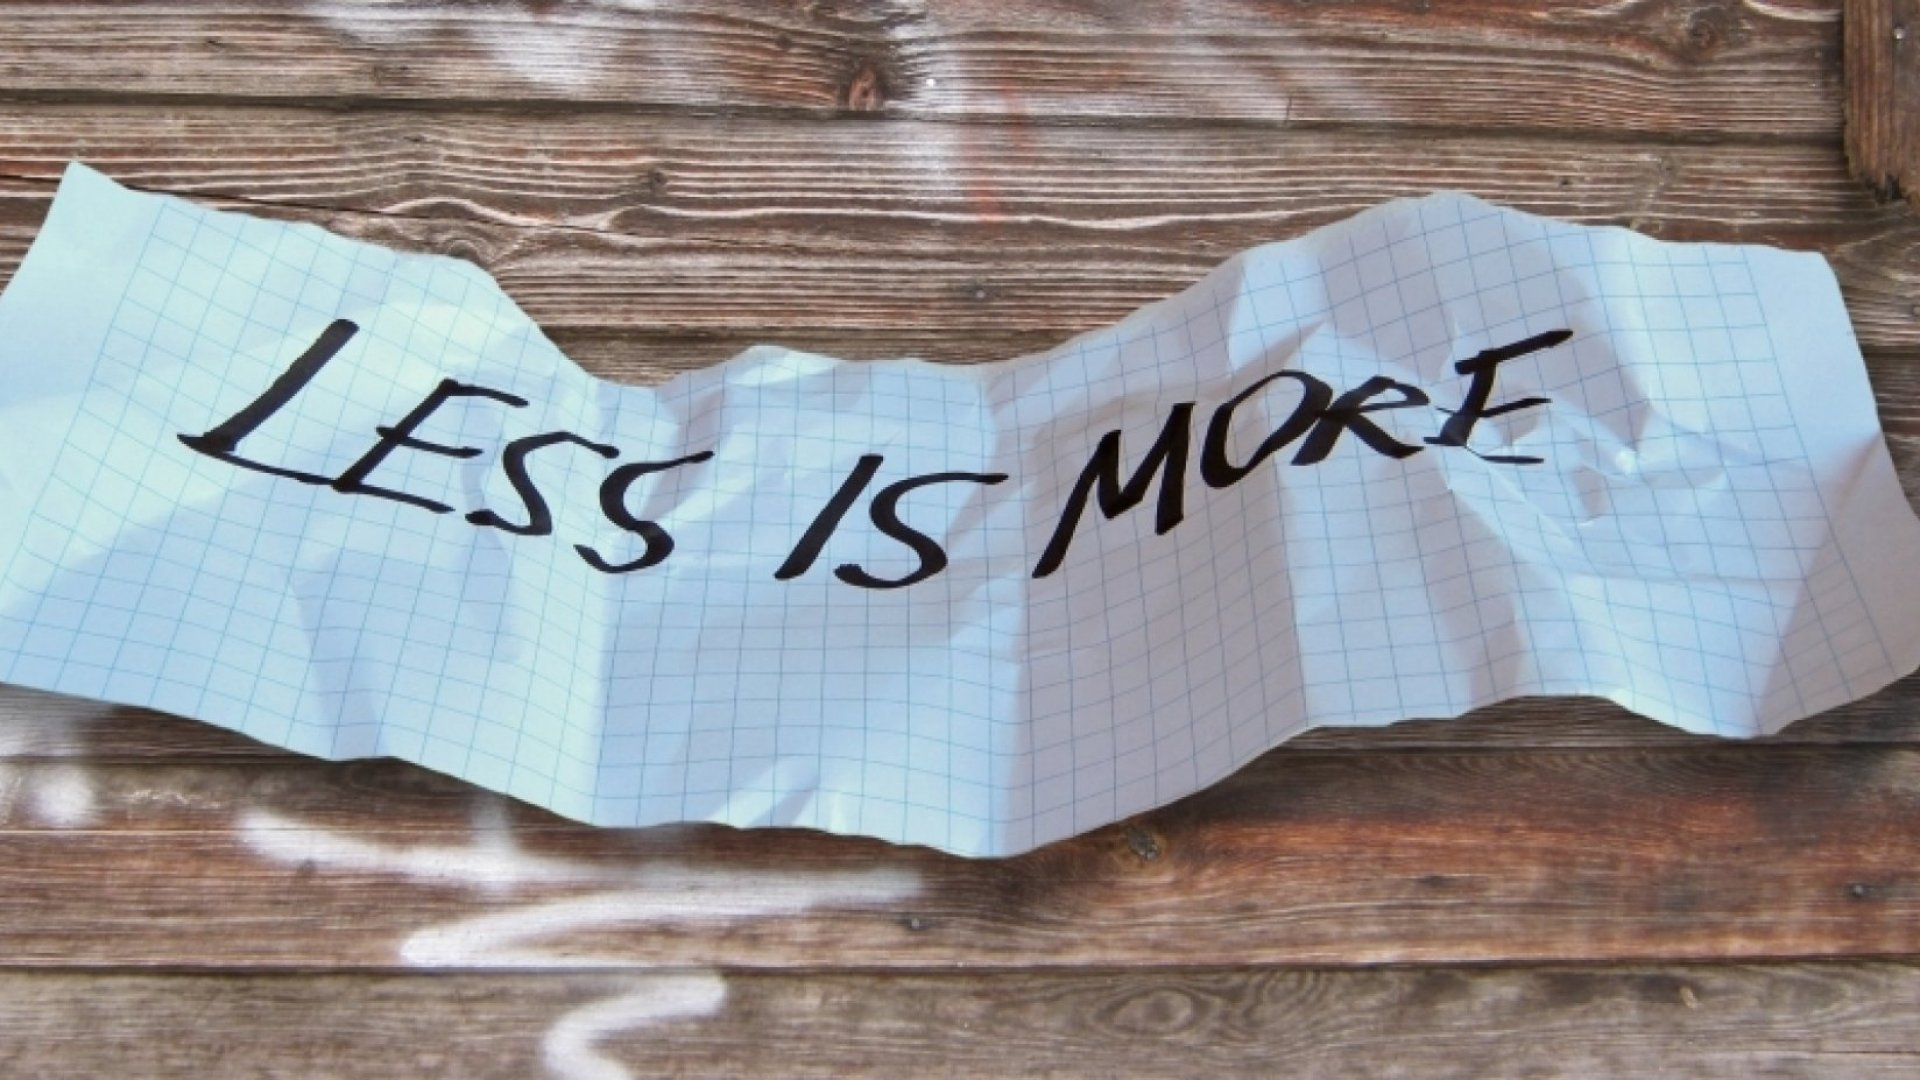 4 Startups That Are Using 'Less Is More' to Dominate Their Industries